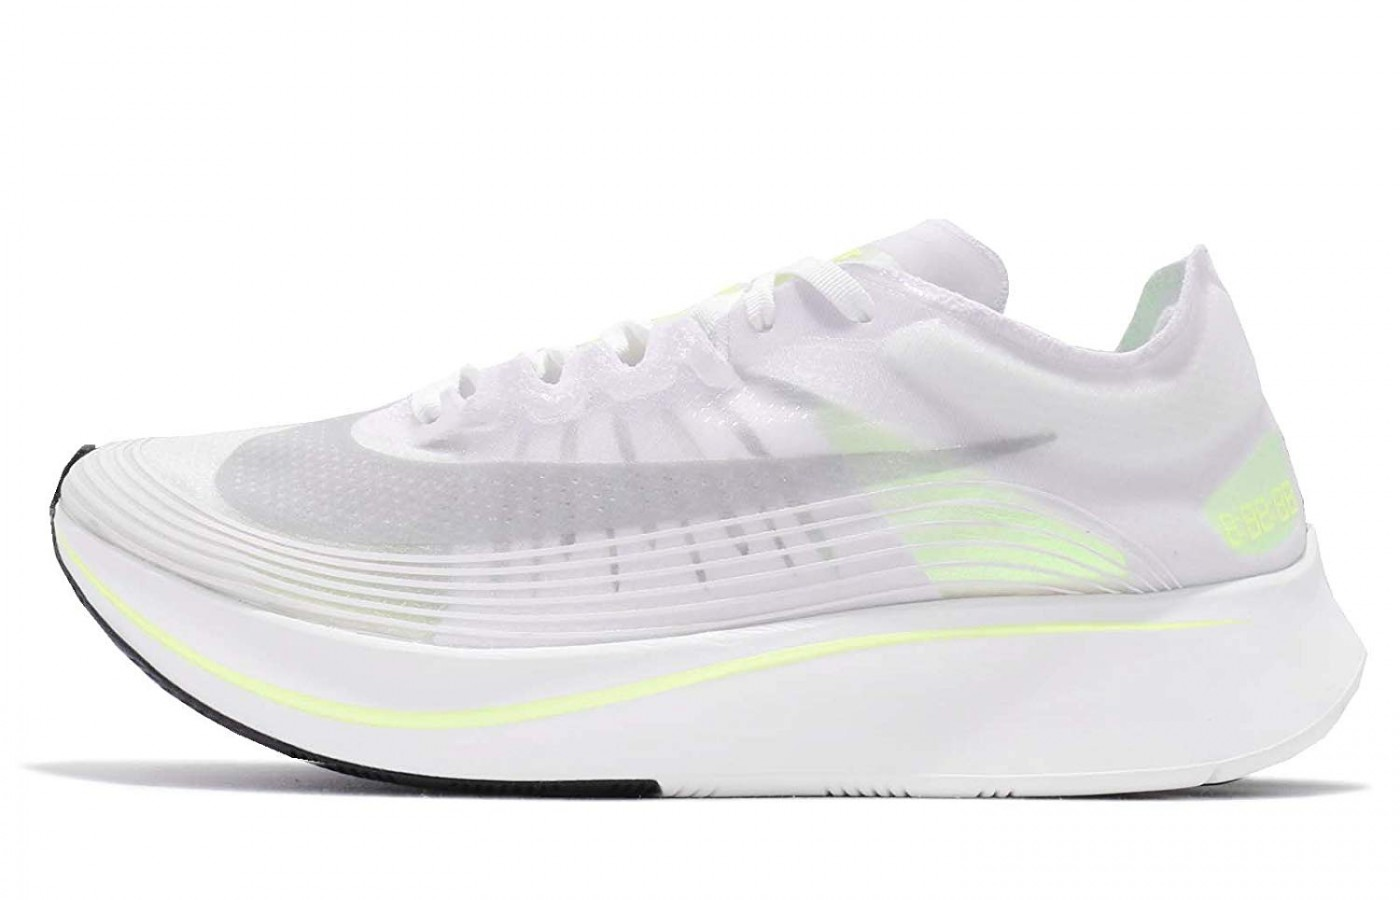 Nike Zoom Fly SP Side